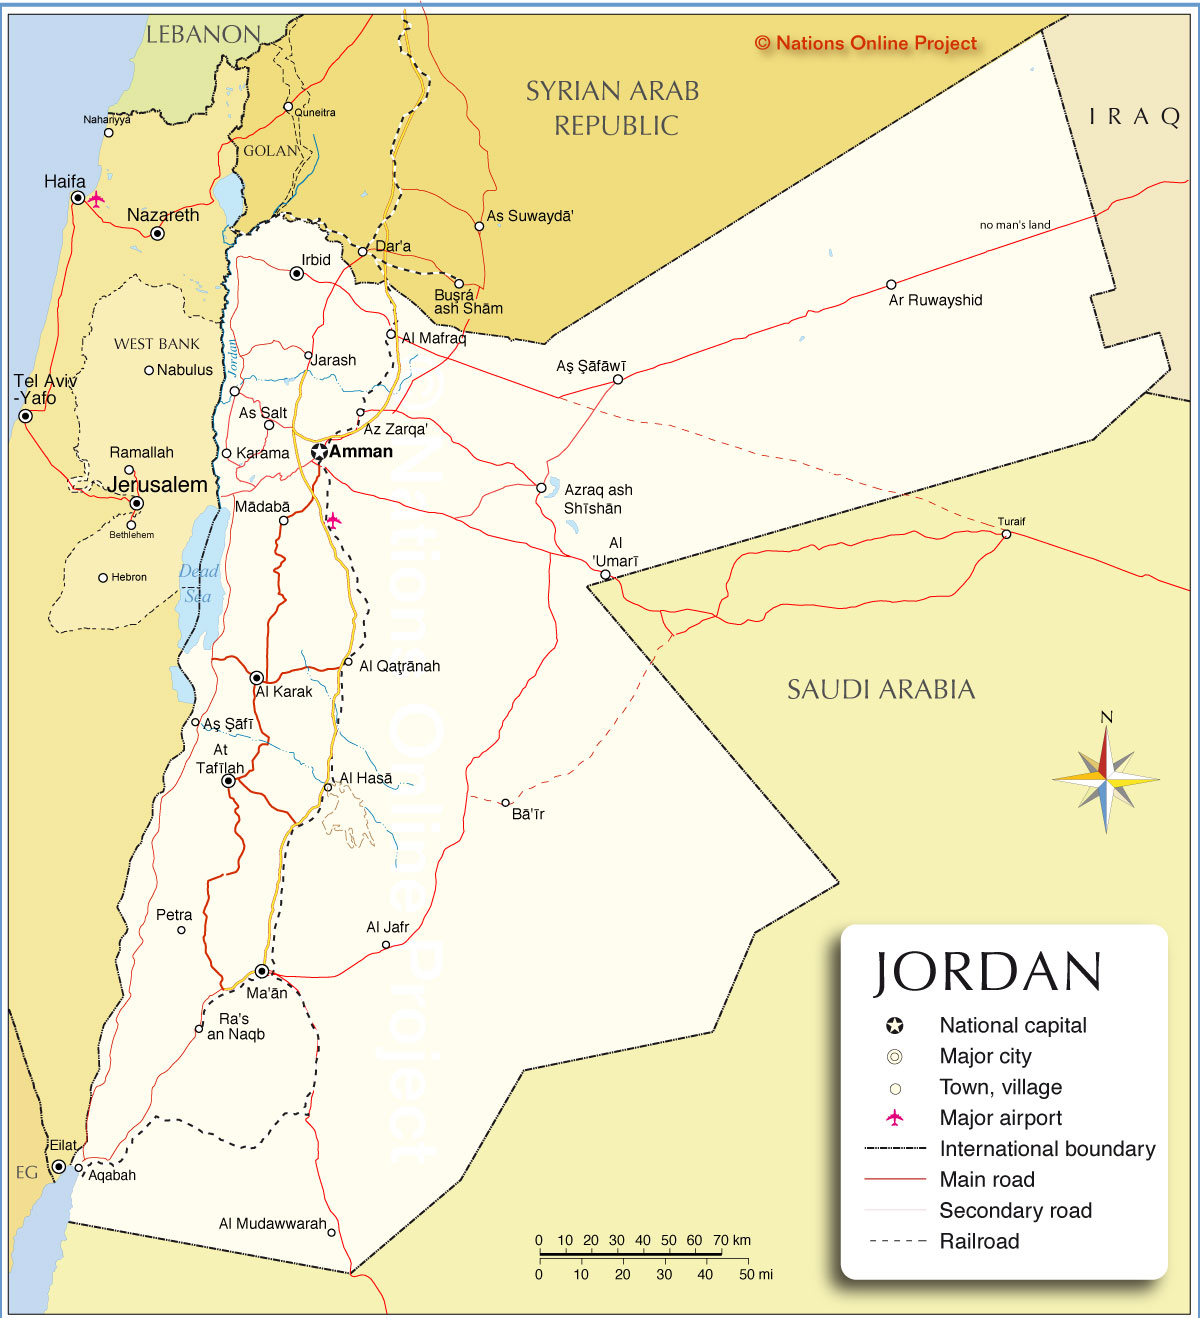 Political Map Of Jordan.Political Map Of Jordan Nations Online Project